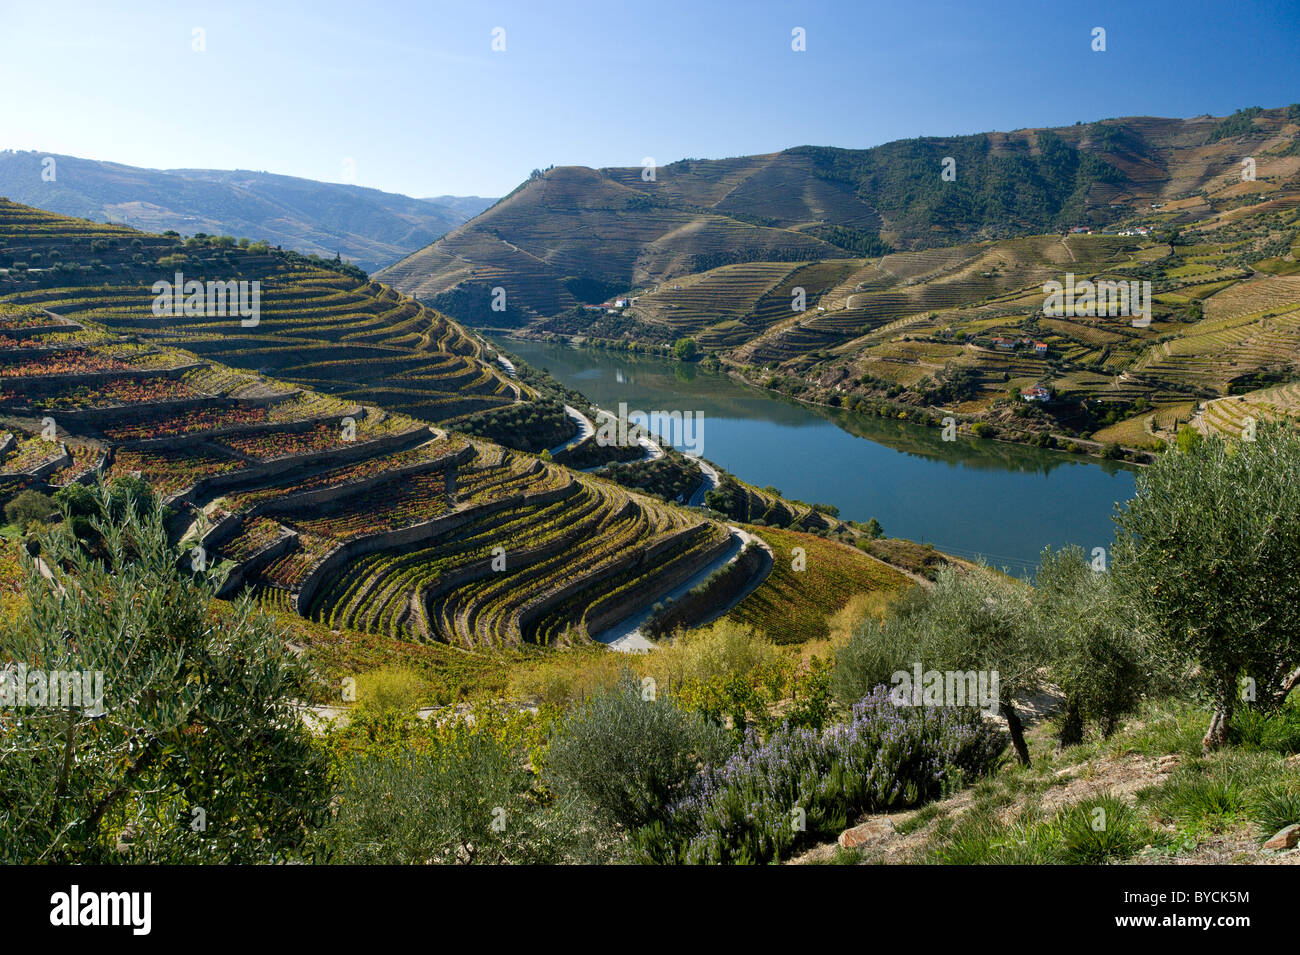 regua douro valley portugal stockfotos regua douro valley portugal bilder alamy. Black Bedroom Furniture Sets. Home Design Ideas